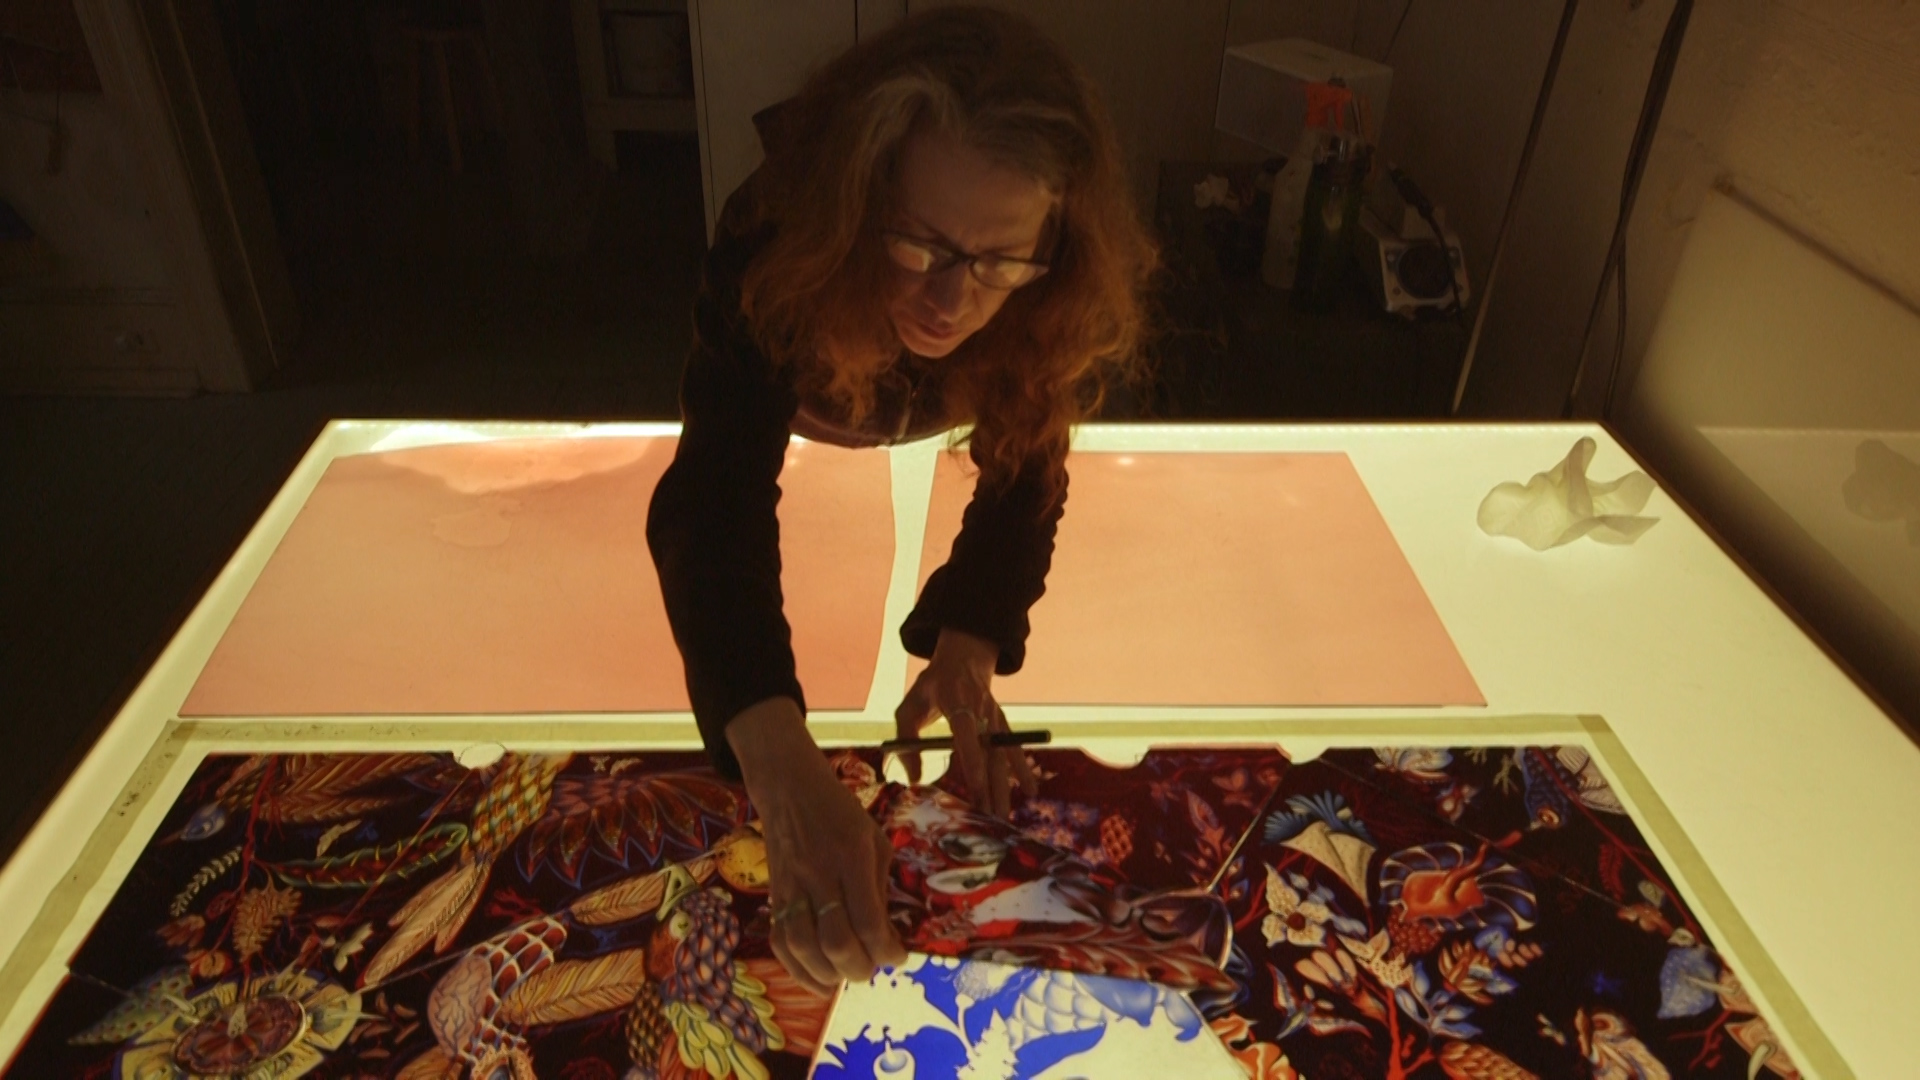 The Cutting Edge of Stained Glass - Judith Schaechter applies avant-garde sensibilities to a once traditional art form: stained glass.Season 1, Episode 8